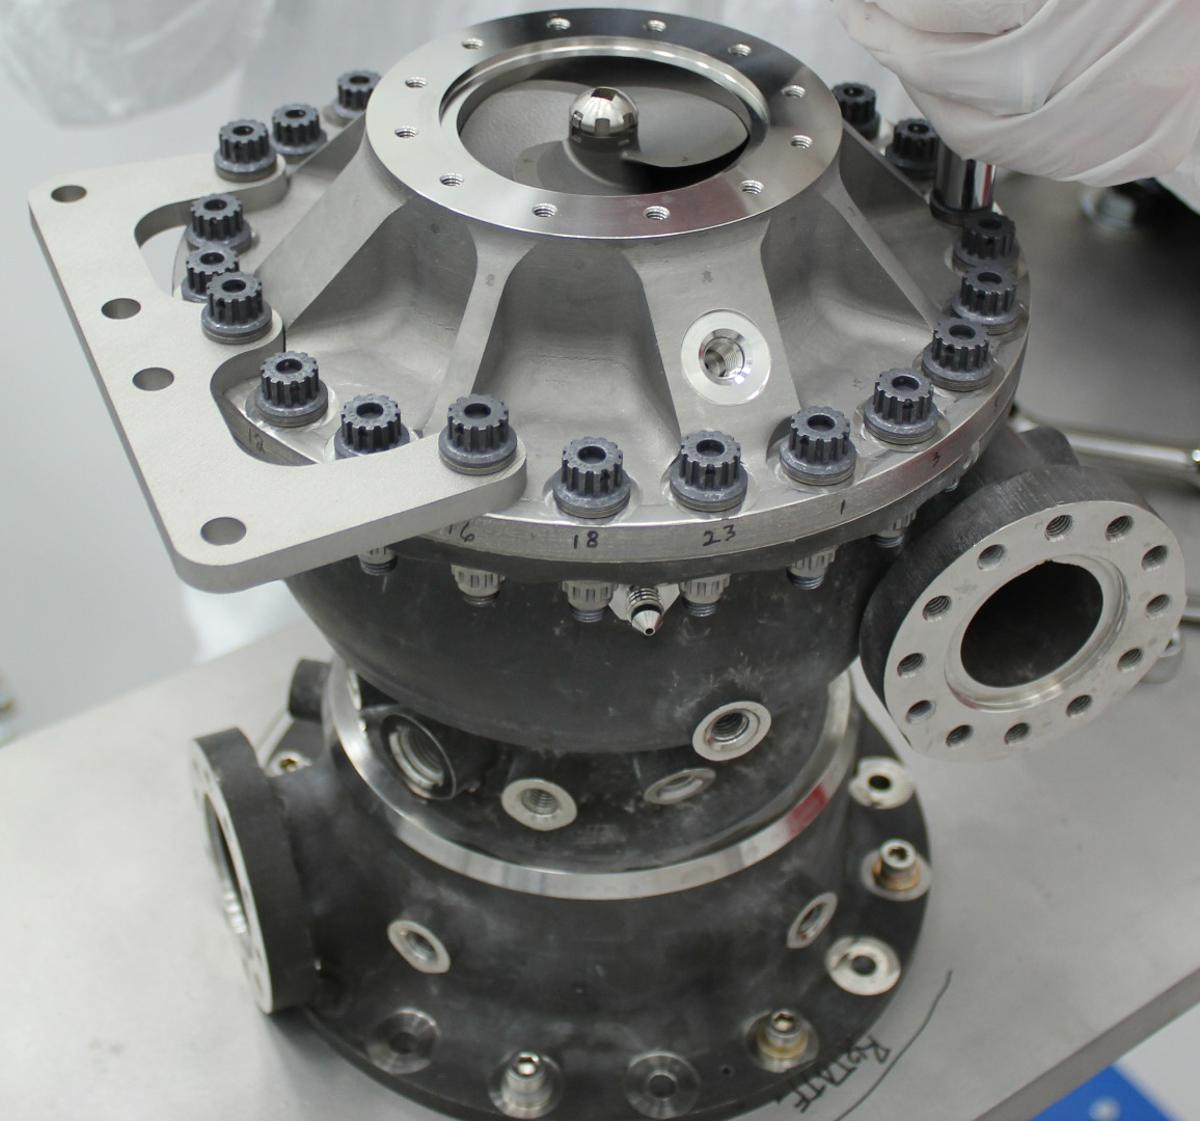 This rocket engine fuel pump has hundreds of parts including a turbine that spins at over 90,000 rpm